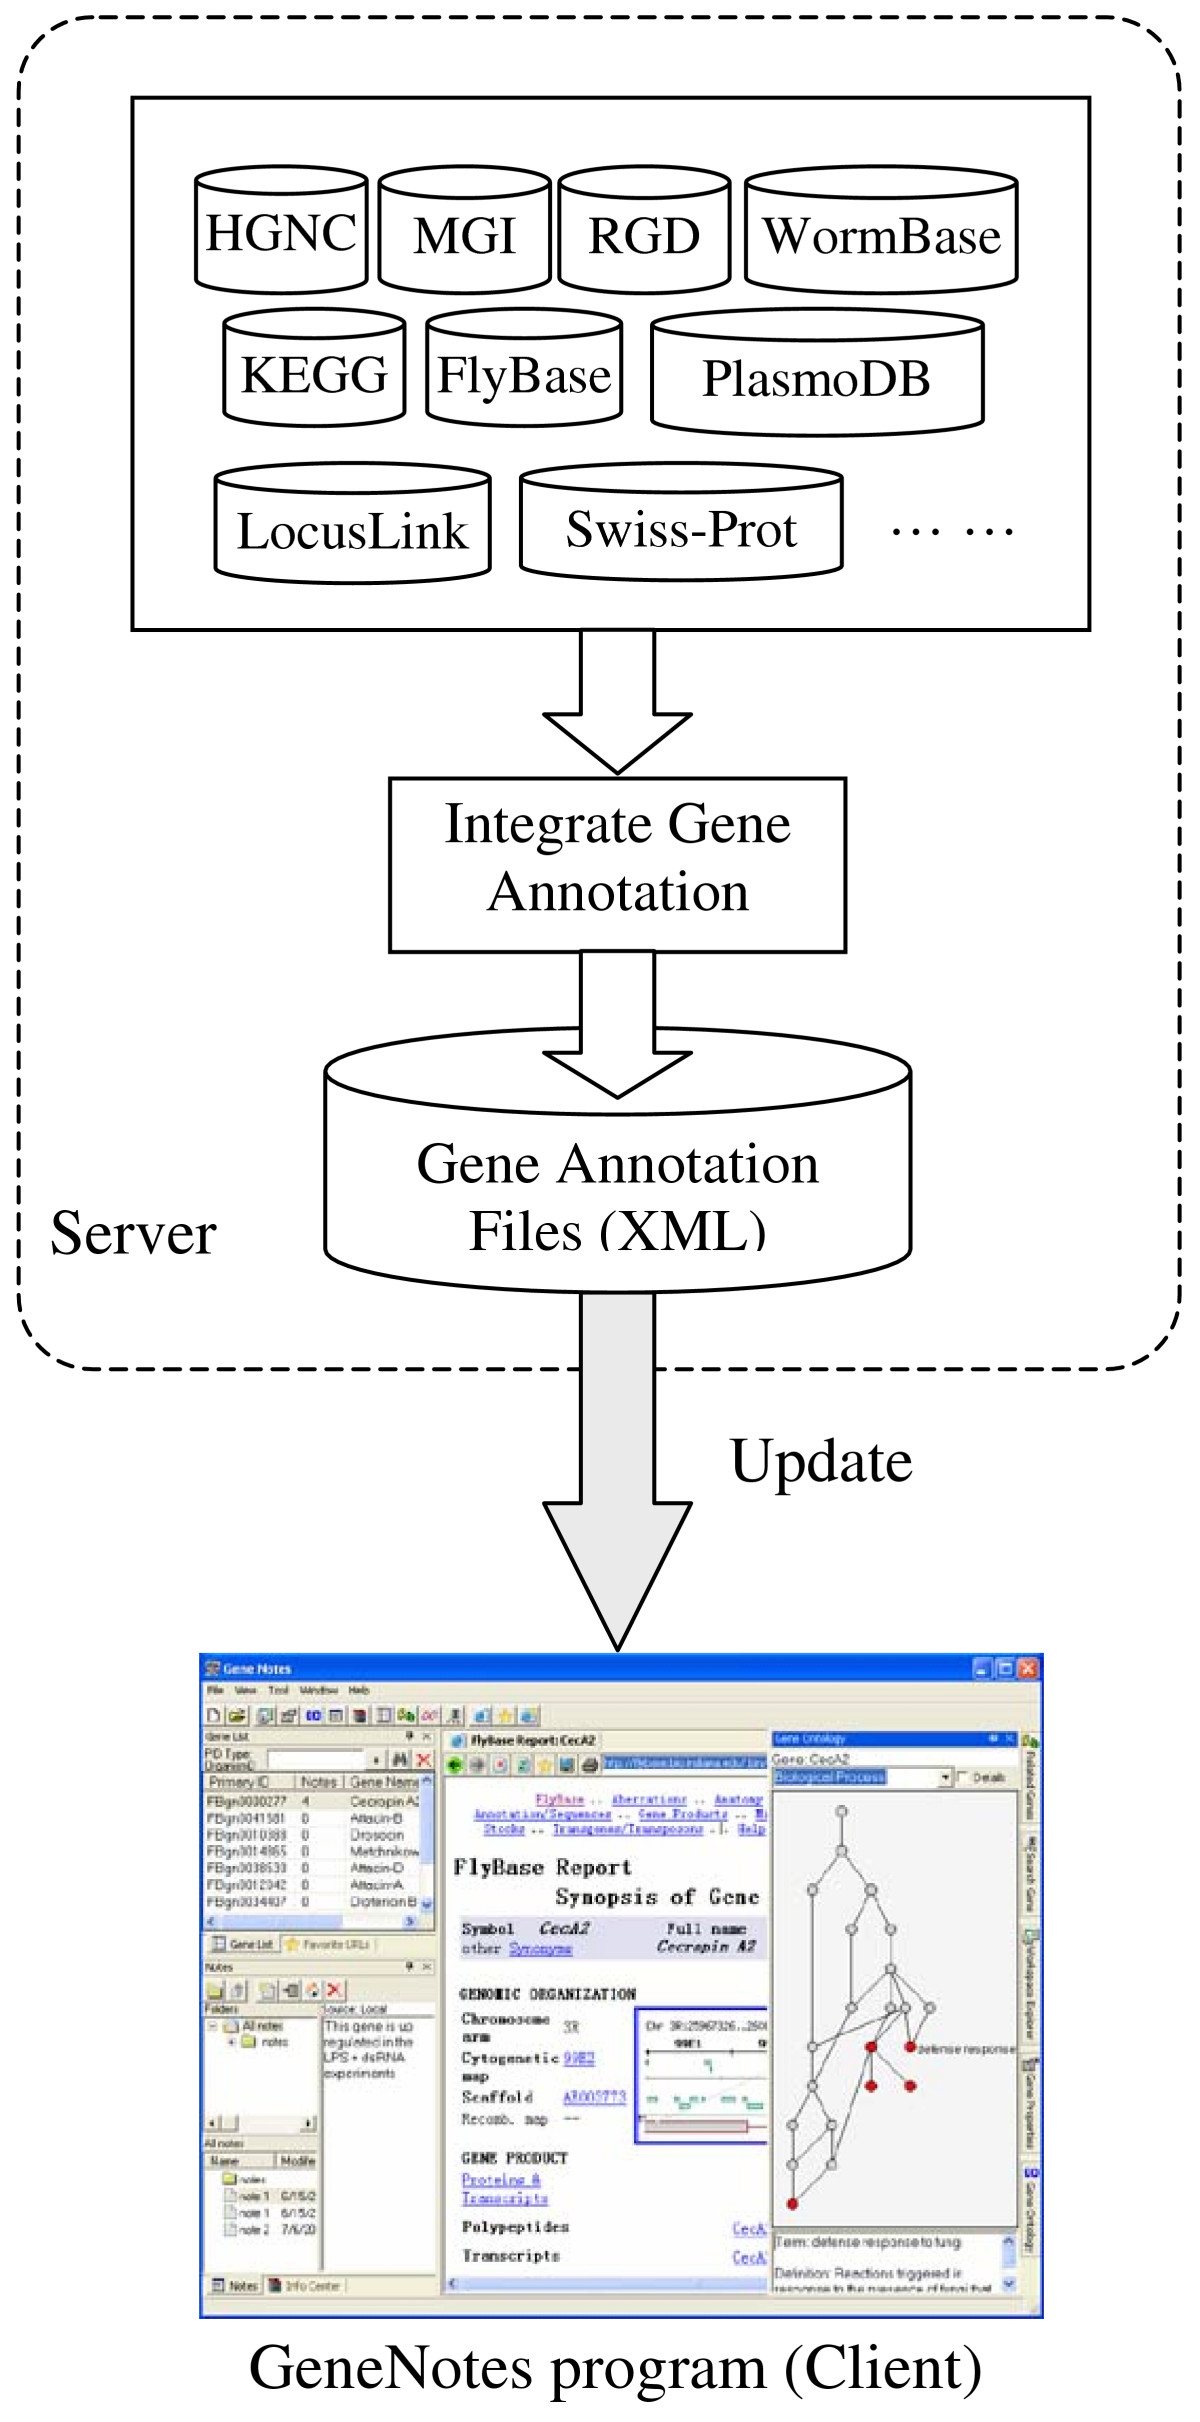 https://static-content.springer.com/image/art%3A10.1186%2F1471-2105-6-20/MediaObjects/12859_2004_Article_345_Fig1_HTML.jpg